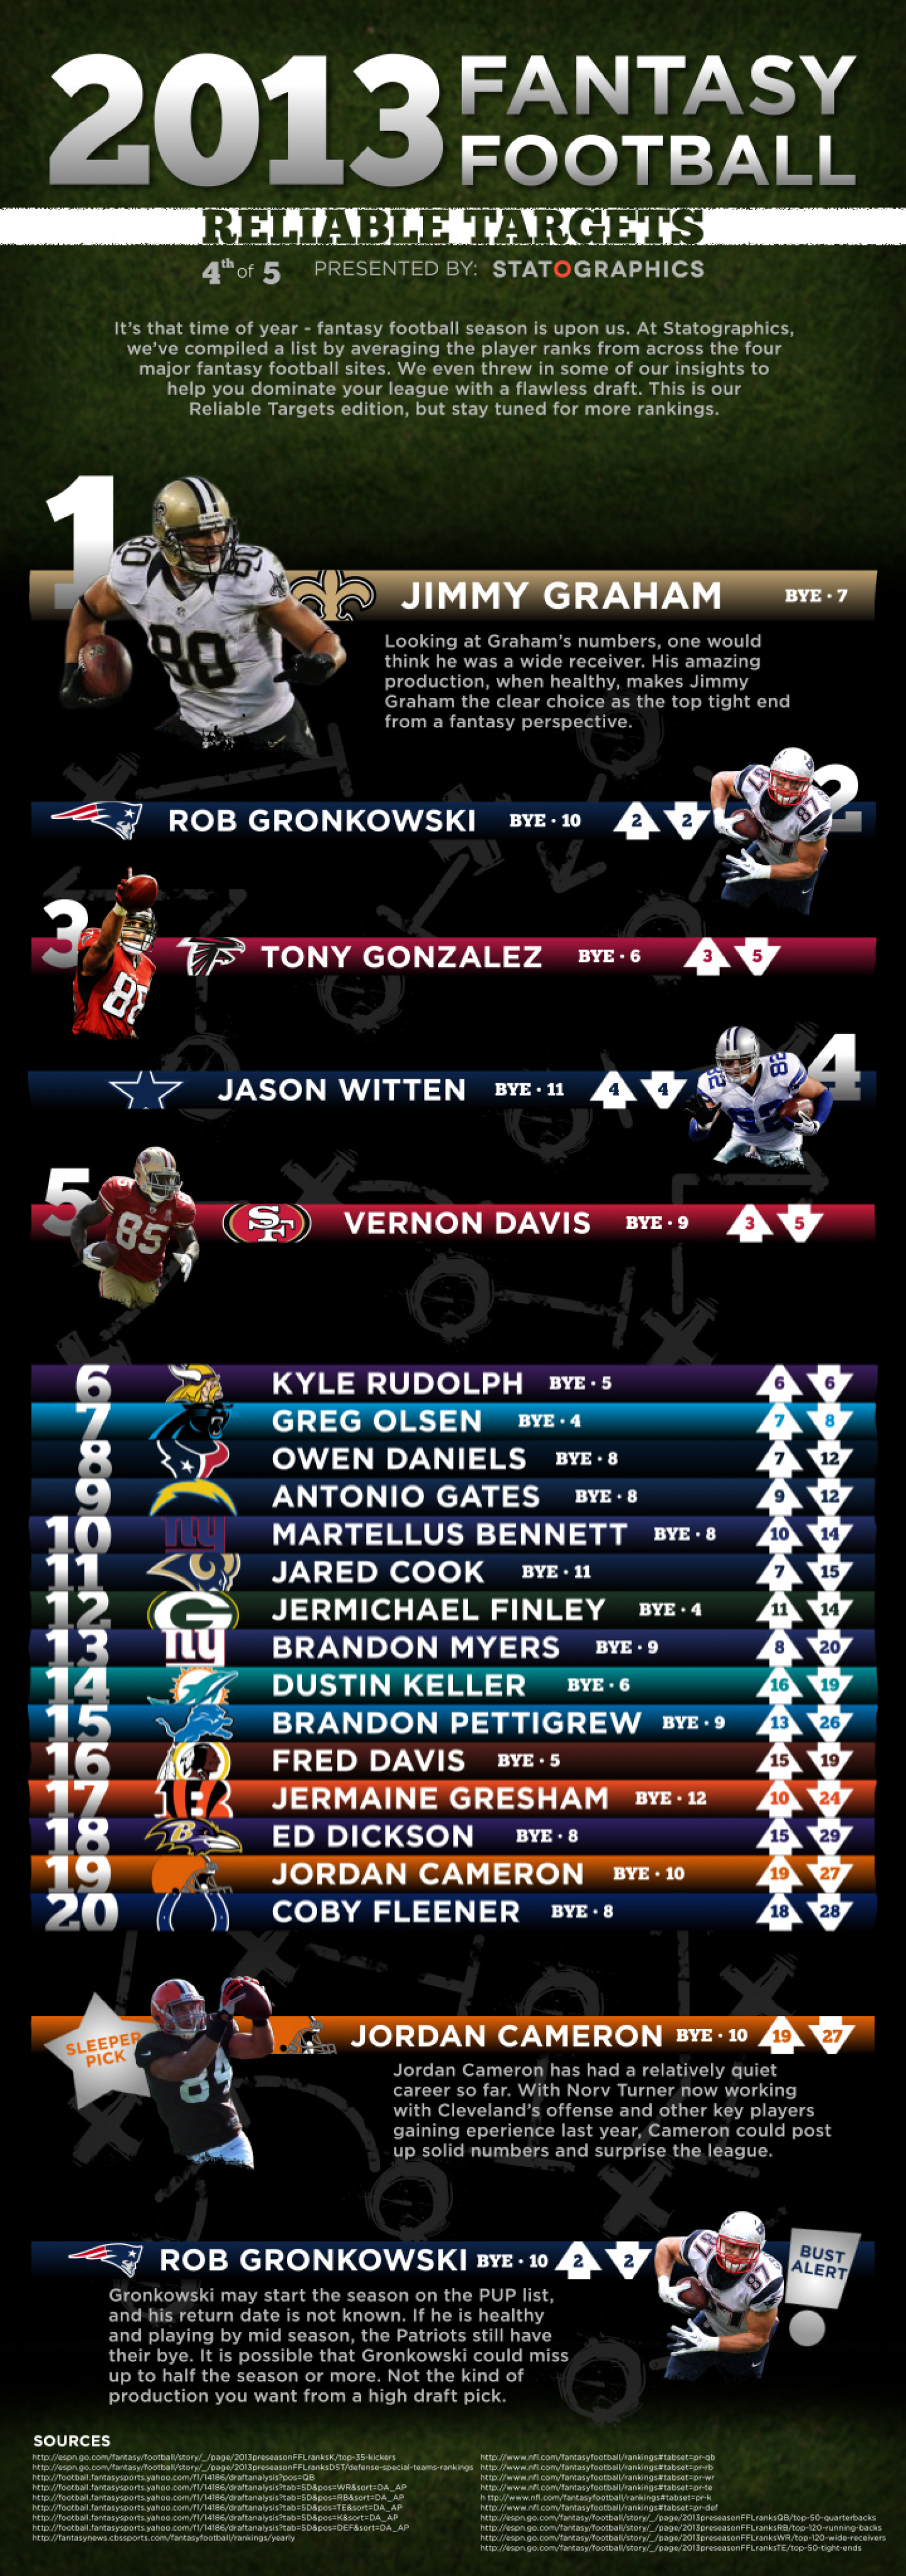 Fantasy Football Reliable Targets Infographic